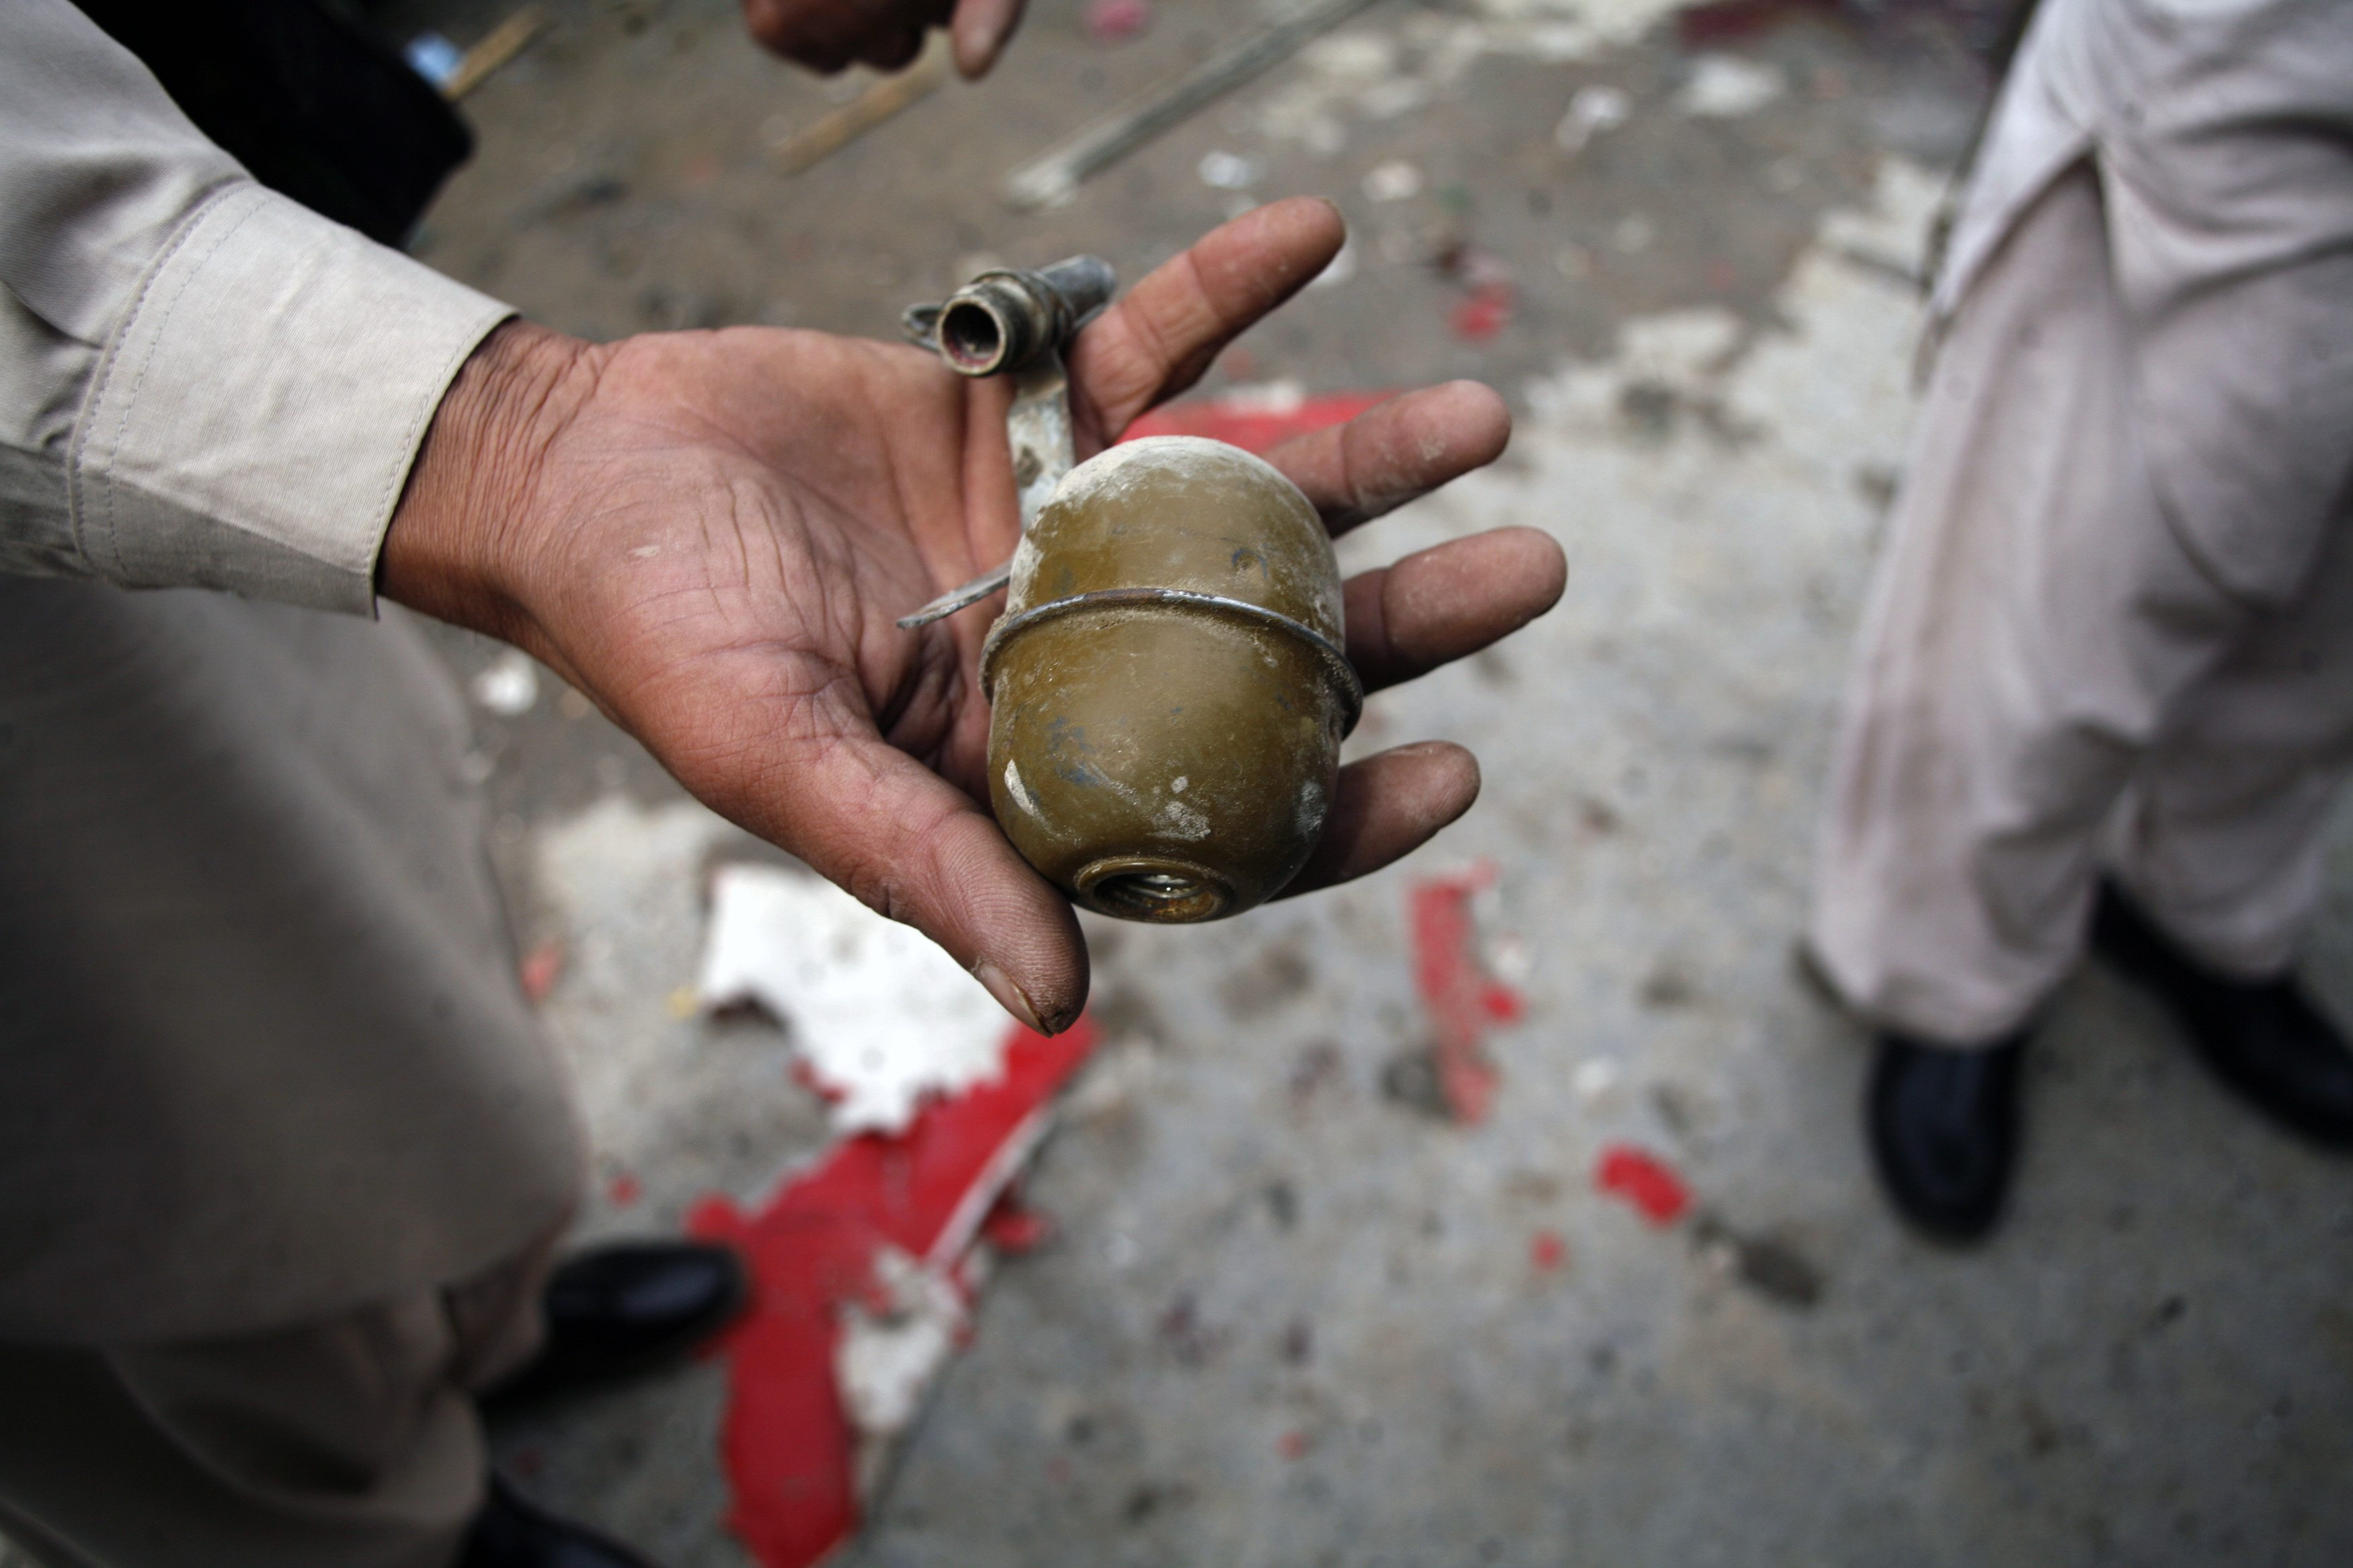 A security official shows a detonated grenade found at the site of a bomb attack in Quetta April 24, 2013. The bomb blast, which happened near a private hospital, injured at least 13 people, including two children in the city's Satellite Town area on Wednesday, according to local media. The explosive device, detonated with a remote control, was planted on a bicycle, the news report said.  — Reuters Photo